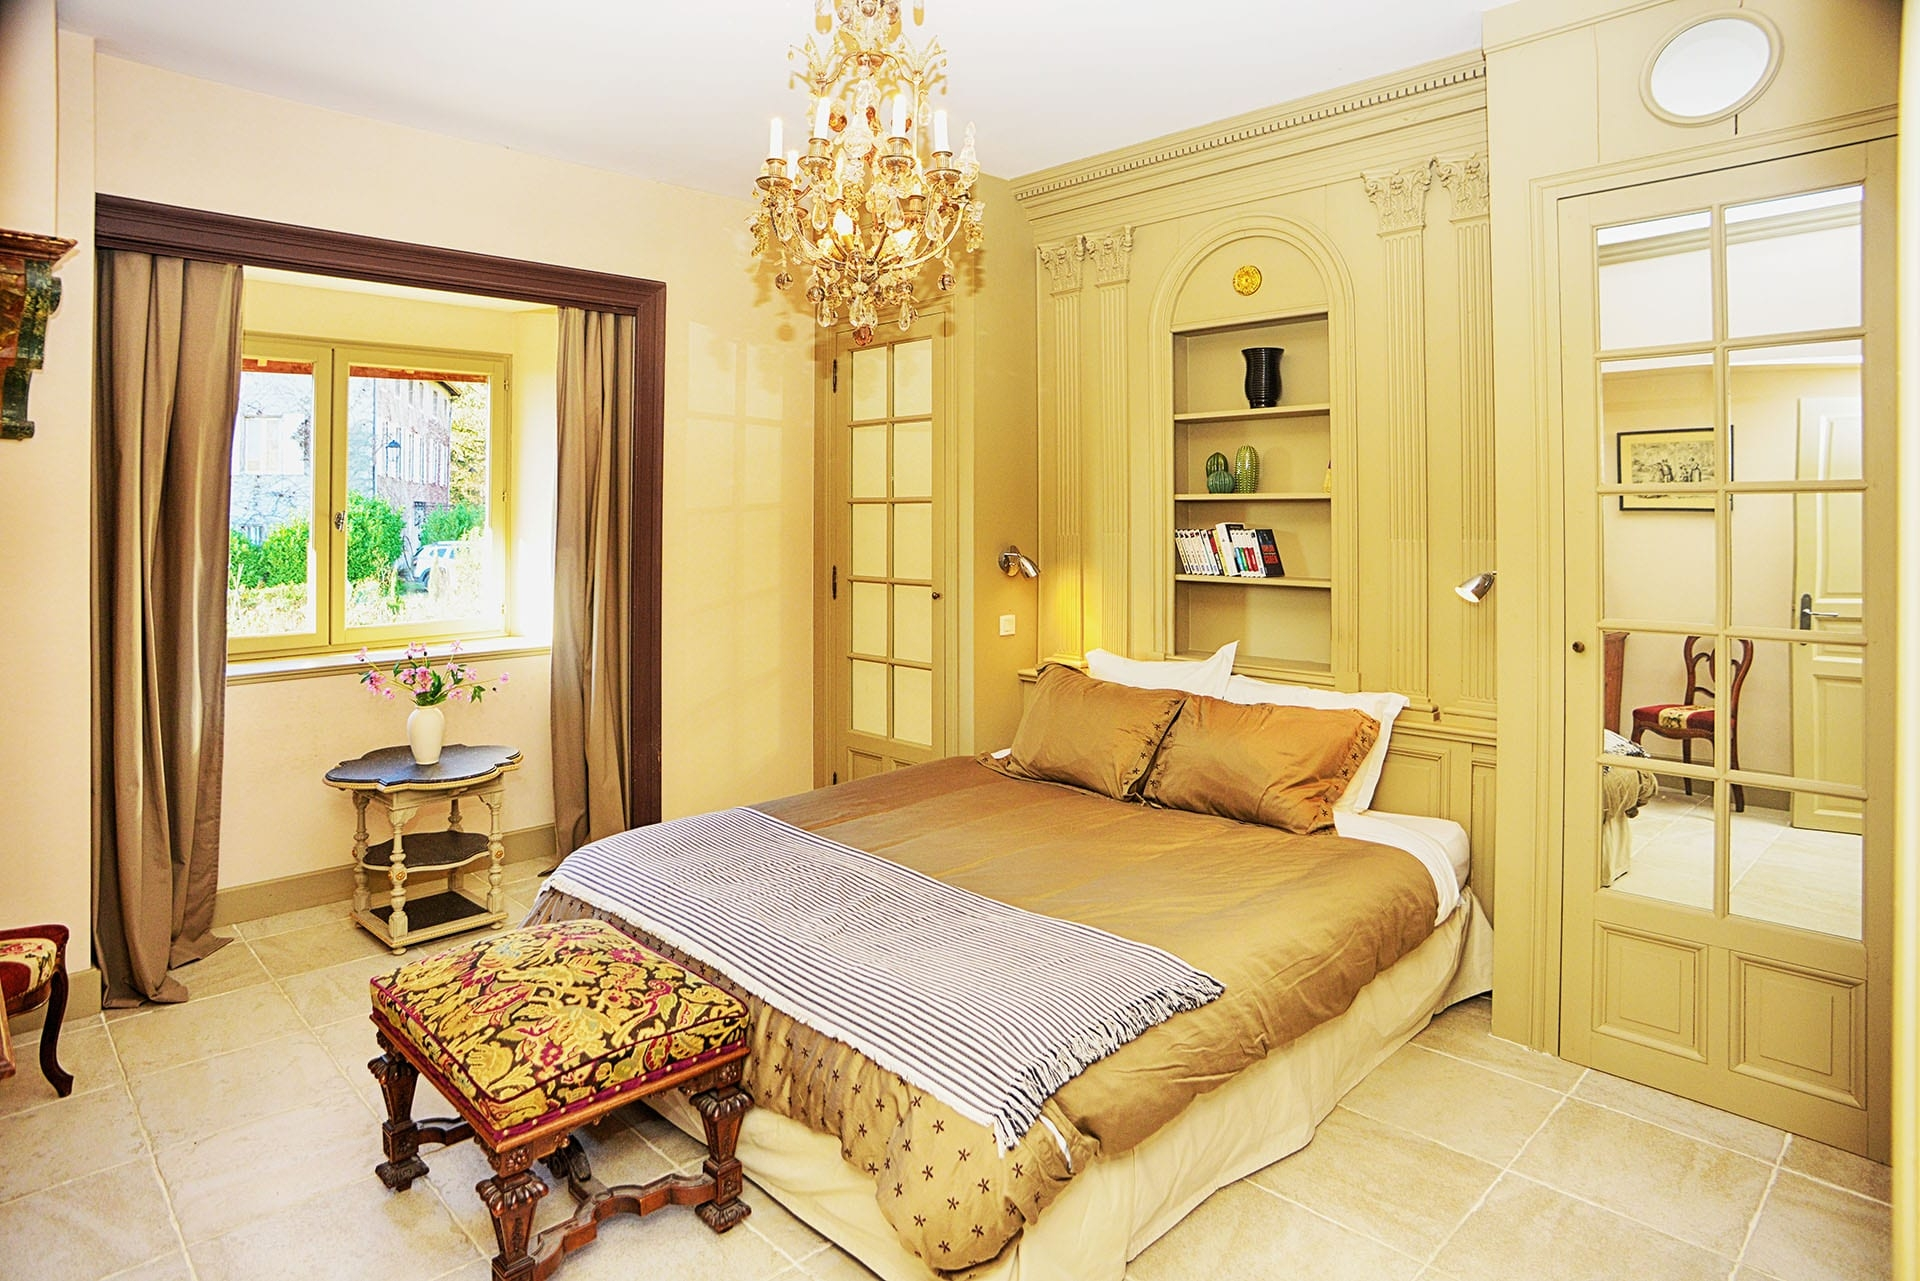 appart-cottage-chambre_3